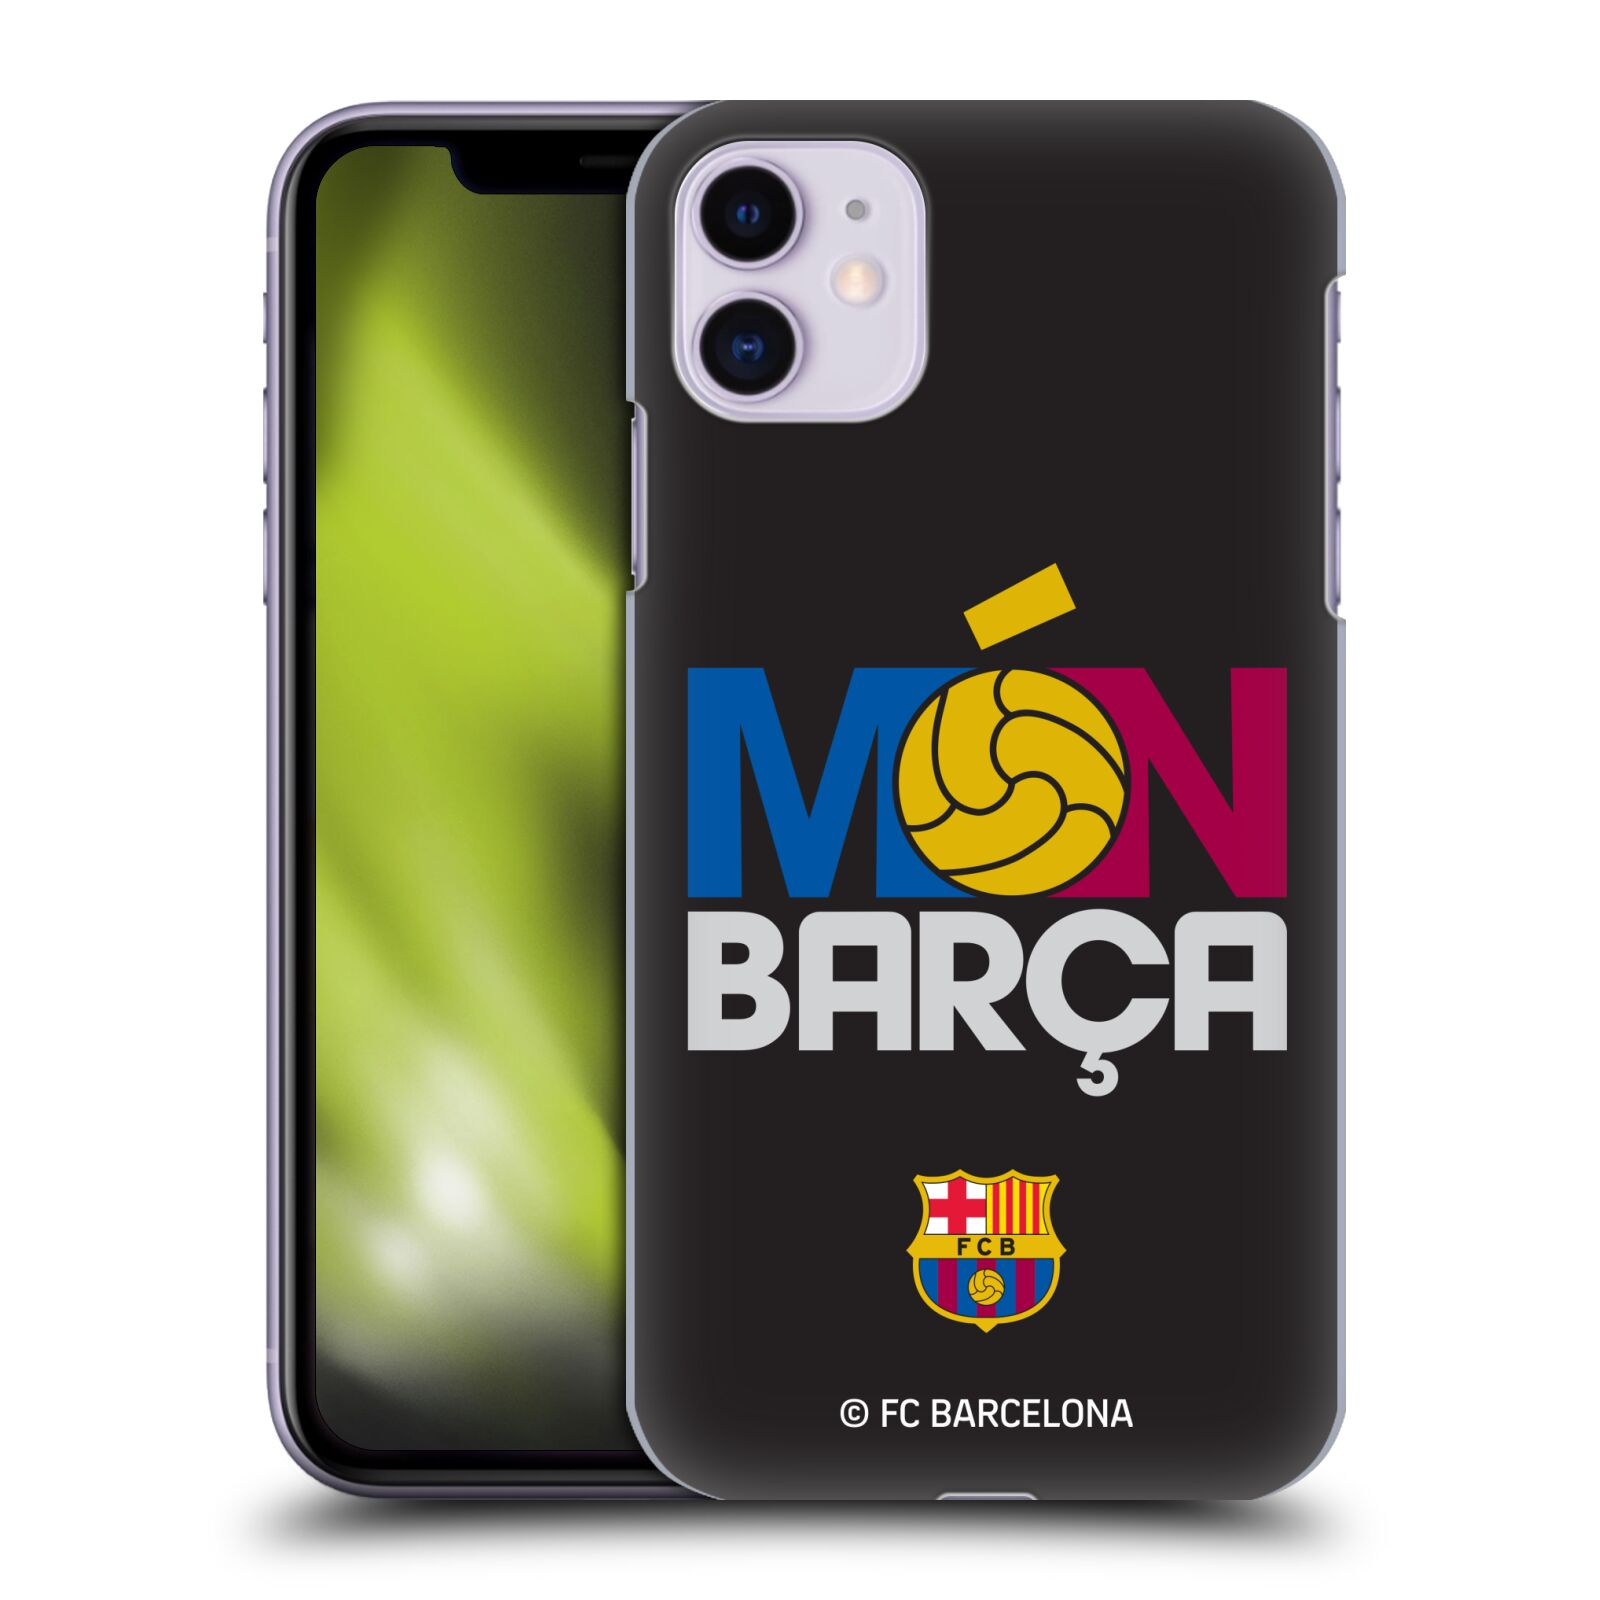 Official FC Barcelona 2017/18 Campions Mon Barca Case for Apple iPhone 11